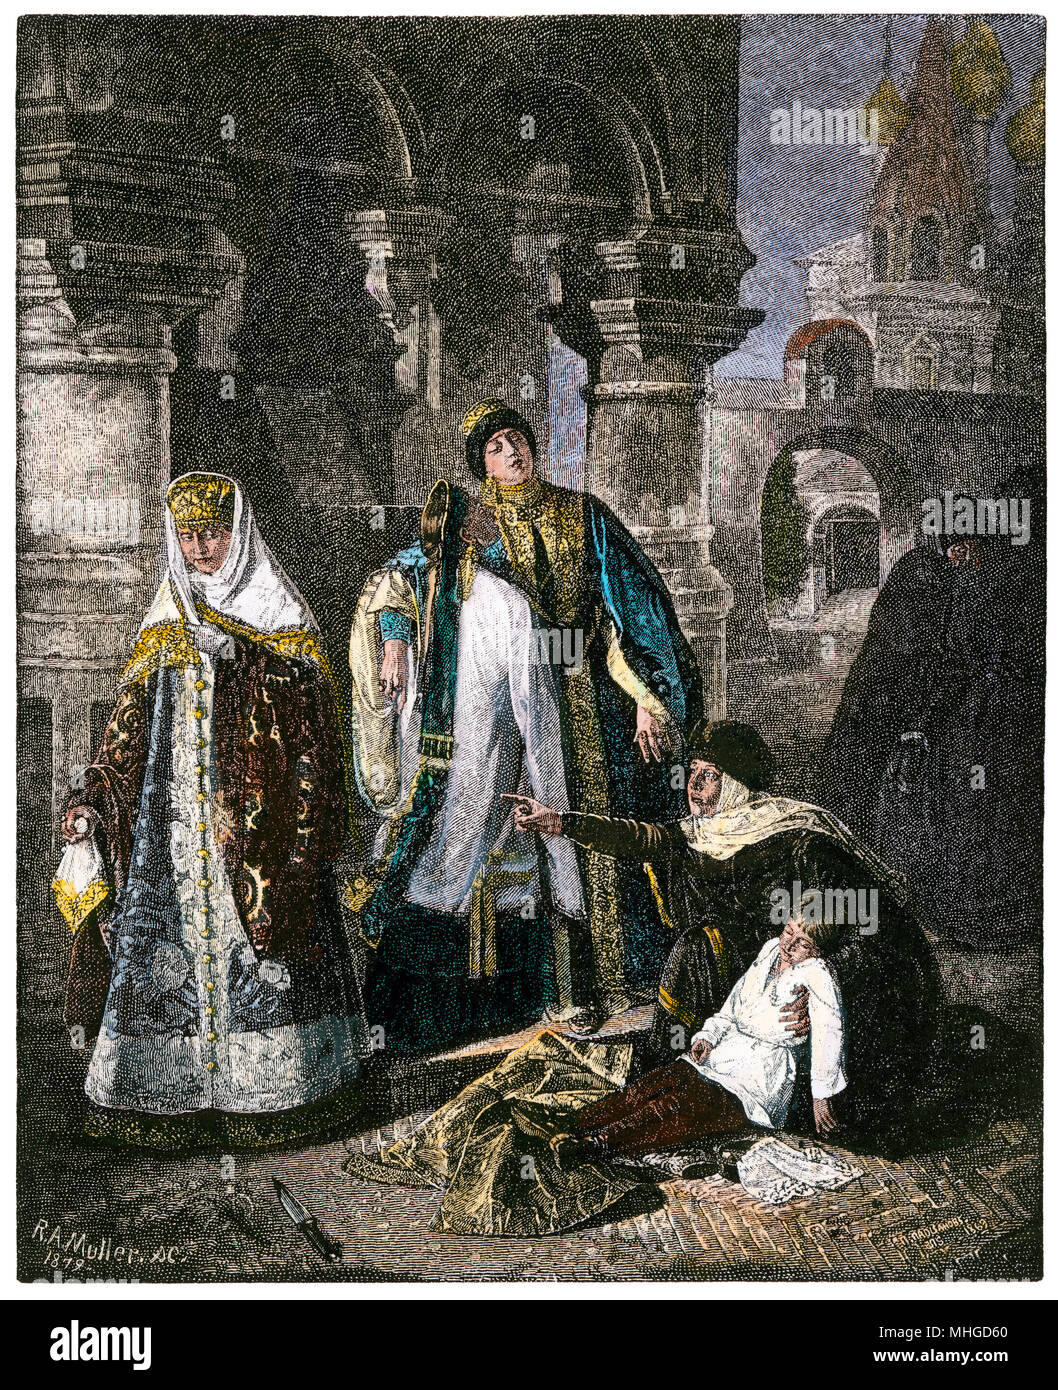 Tsar Ivan IV (the Terrible) after killing his son, Ivan. Hand-colored woodcut - Stock Image